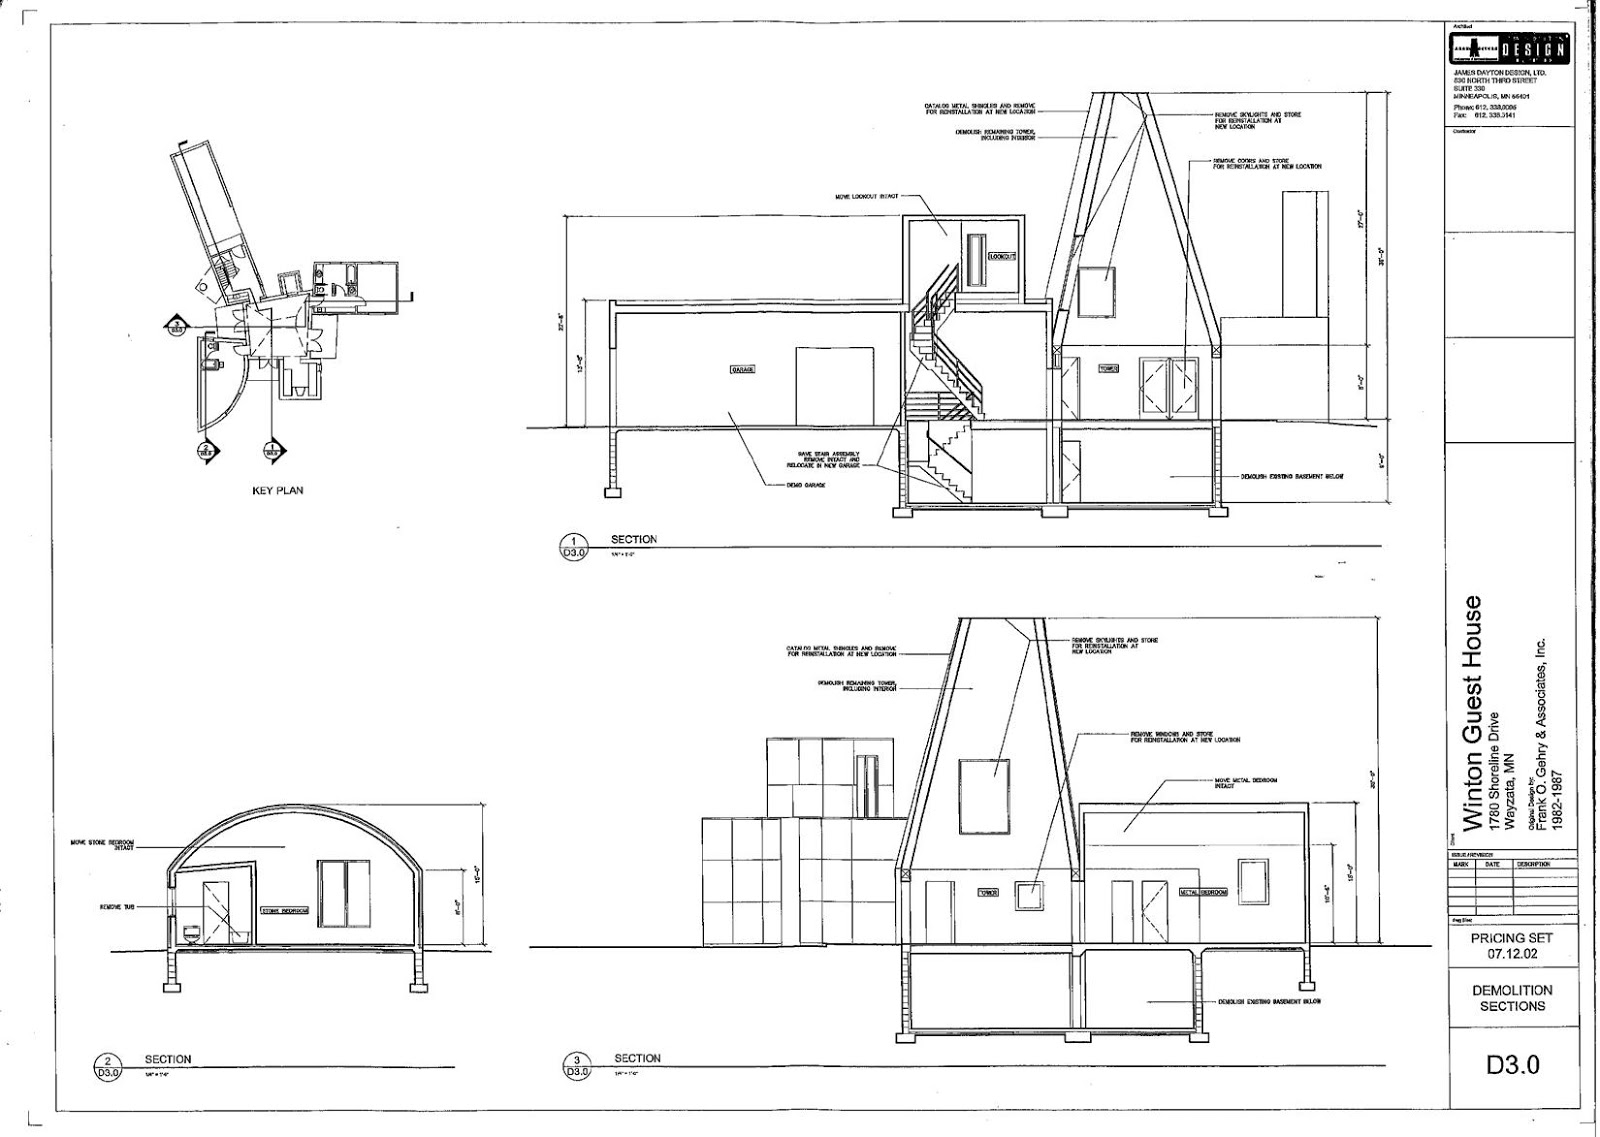 Ad classic norton house frank gehry archdaily - Frank Gehry Winton Guest House Owatonna 2815 29 Jpg 1600 1137 Boceto Pinterest Drawing Projects